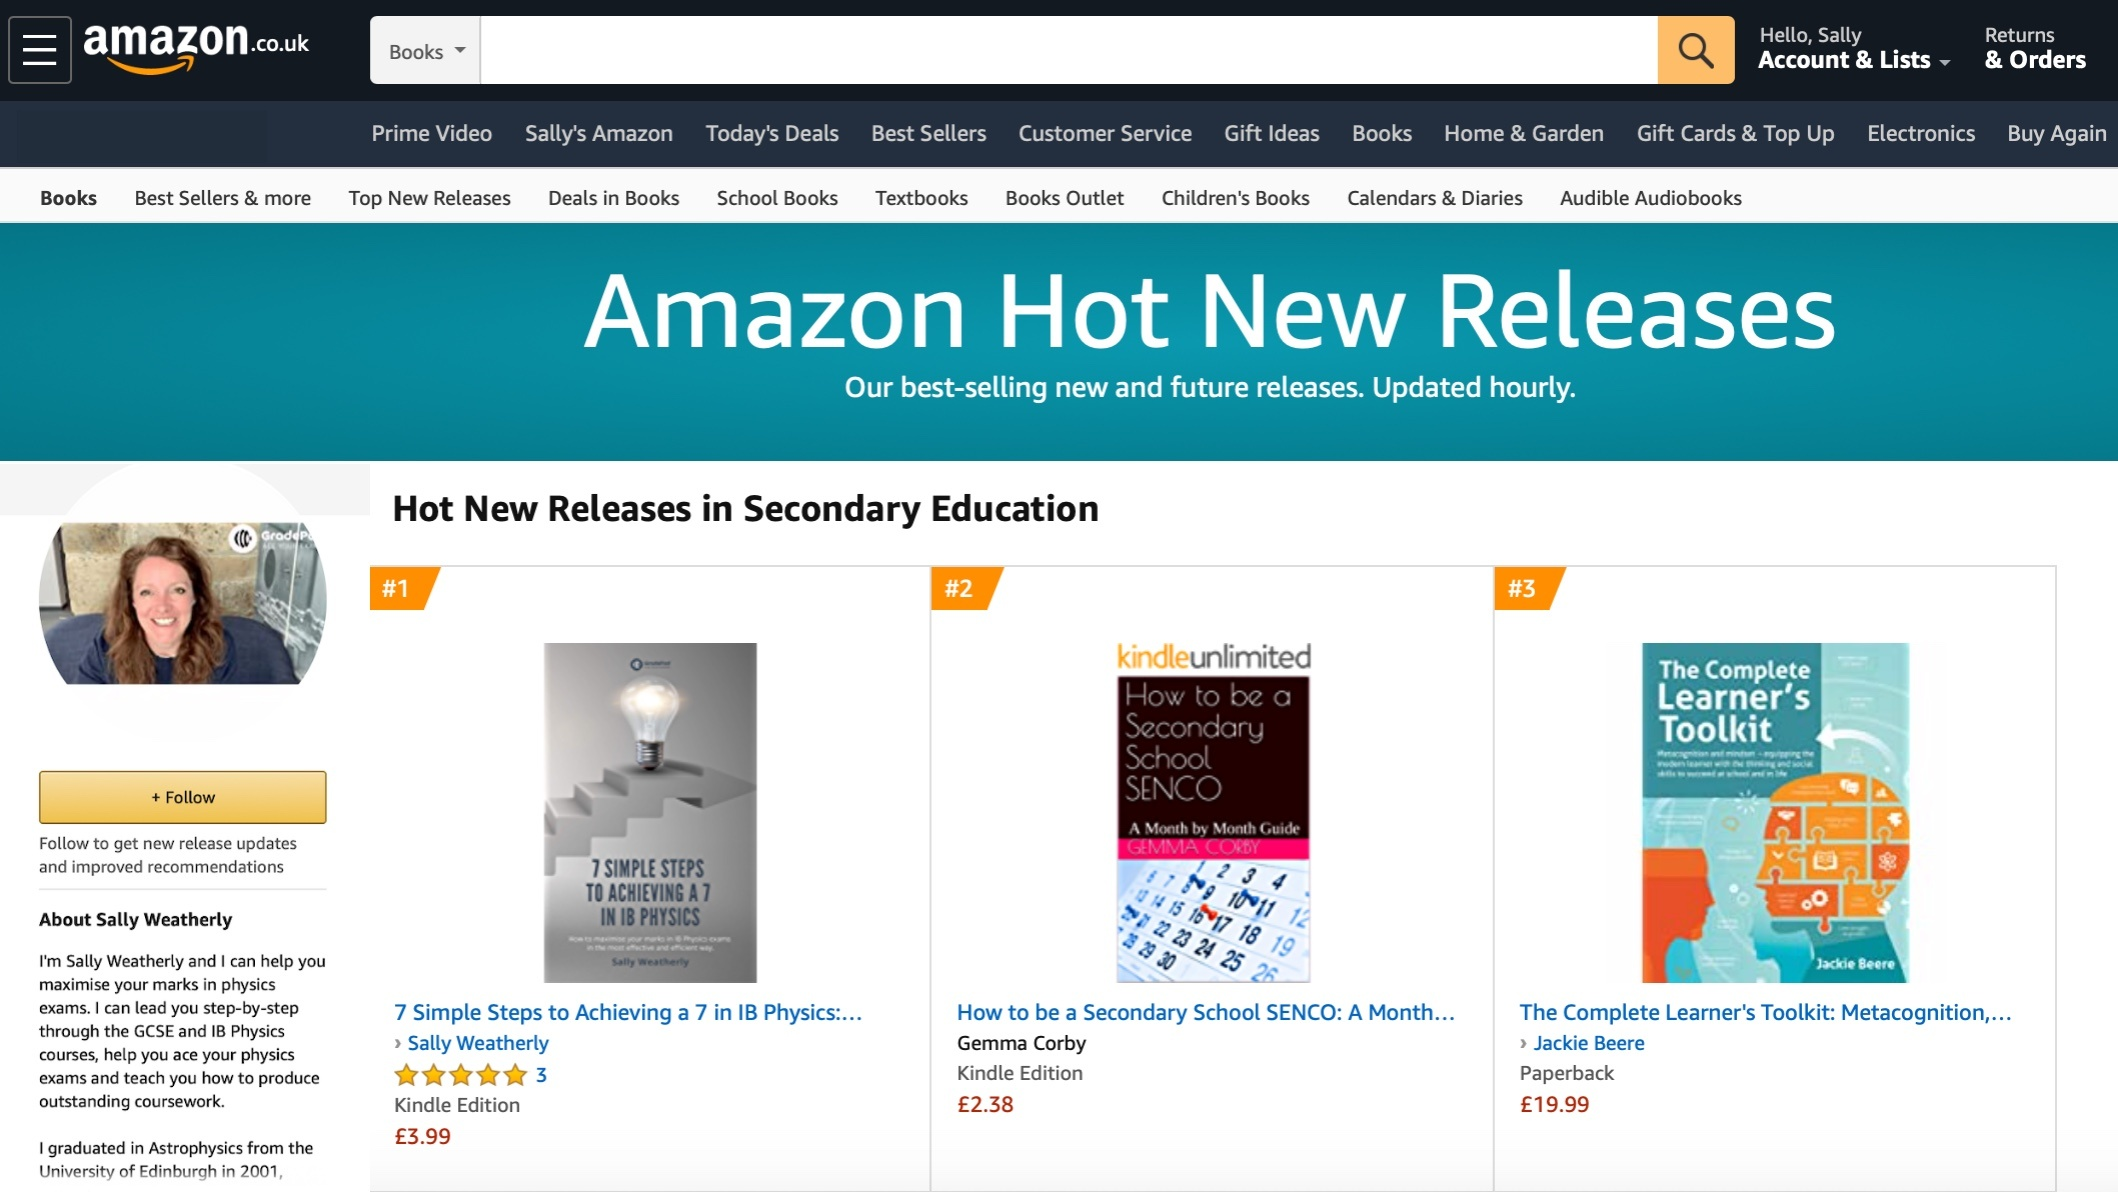 Sally Weatherly 7 Simple Steps Study Guide on Amazon screenshot of how new release